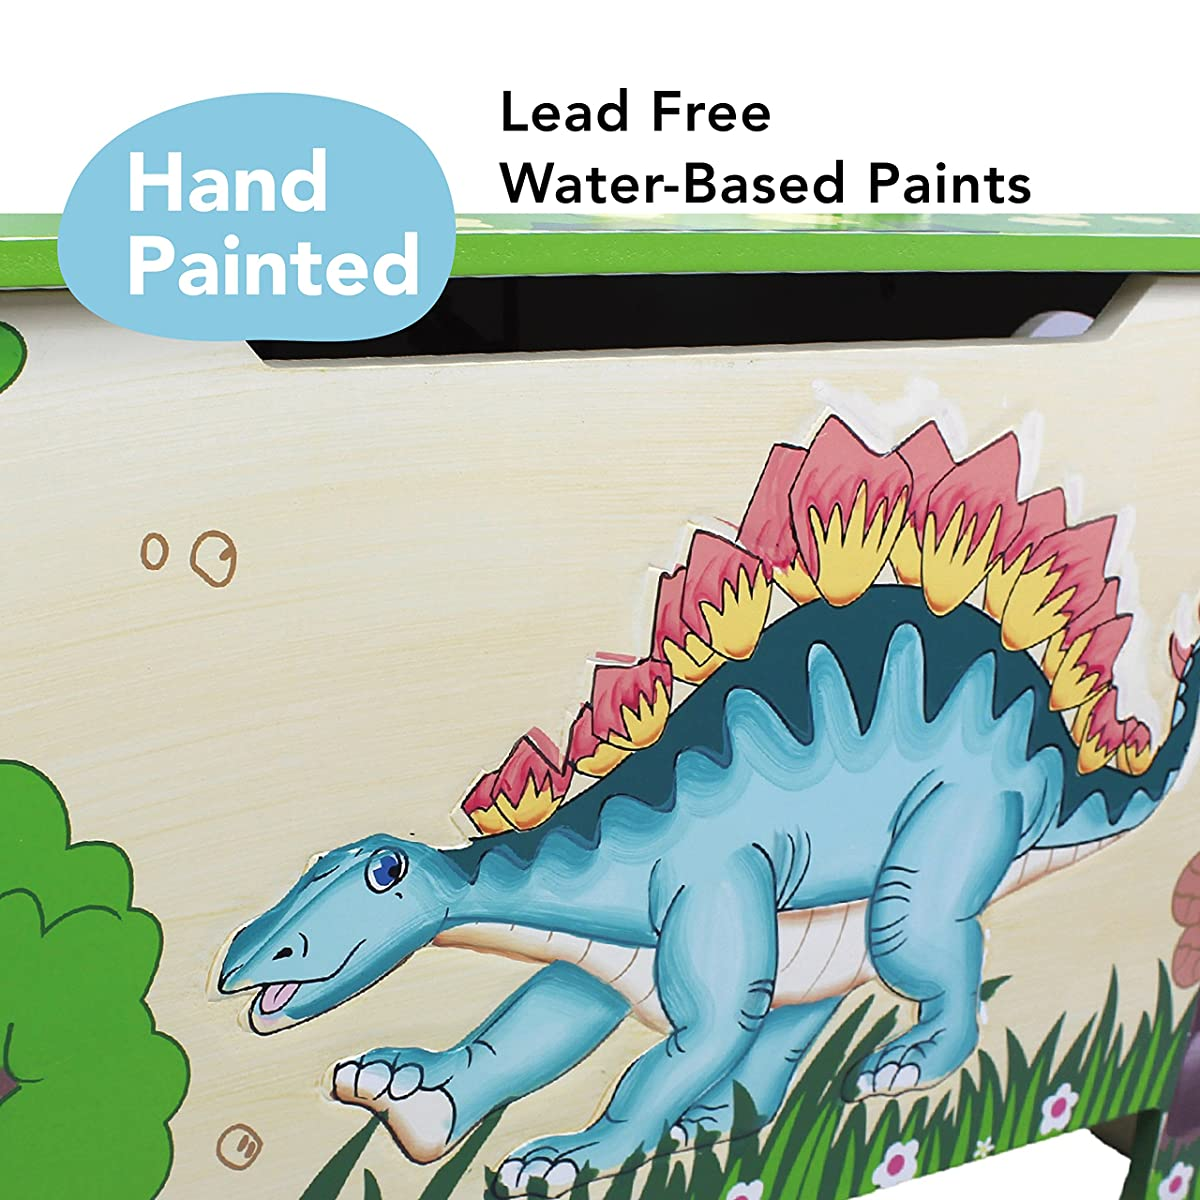 Fantasy Fields - Dinosaur Kingdom Thematic Kids Wooden Toy Chest with Safety Hinges | Imagination Inspiring Hand Crafted & Hand Painted Details | Non-Toxic, Lead Free Water-based Paint